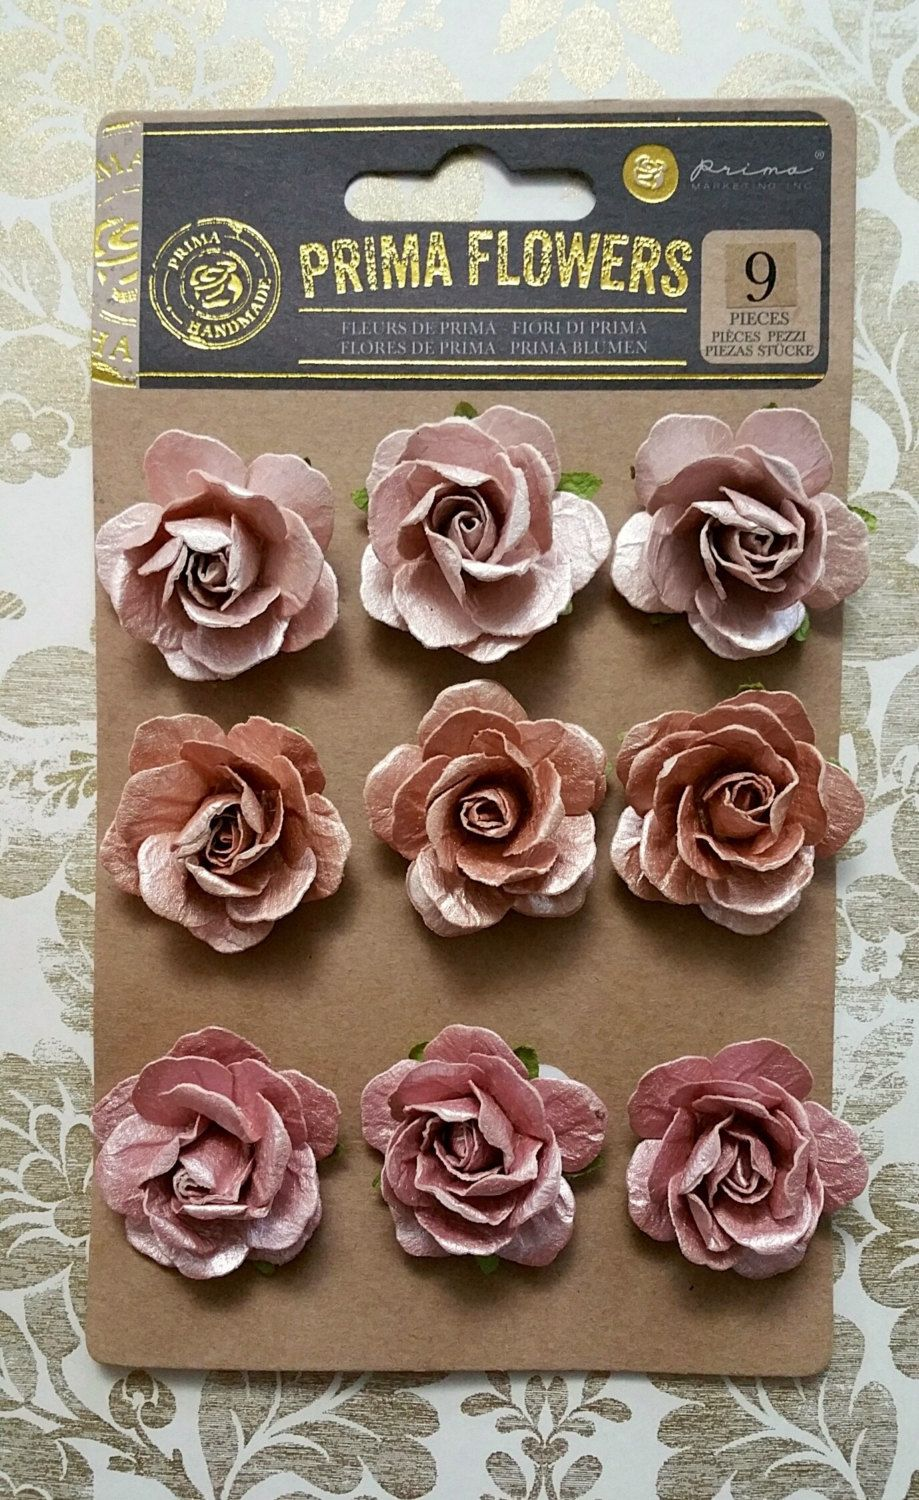 Mauve paper roses pink mulberry roses rose gold roses prima roses mauve paper roses pink mulberry roses rose gold roses prima roses pink mightylinksfo